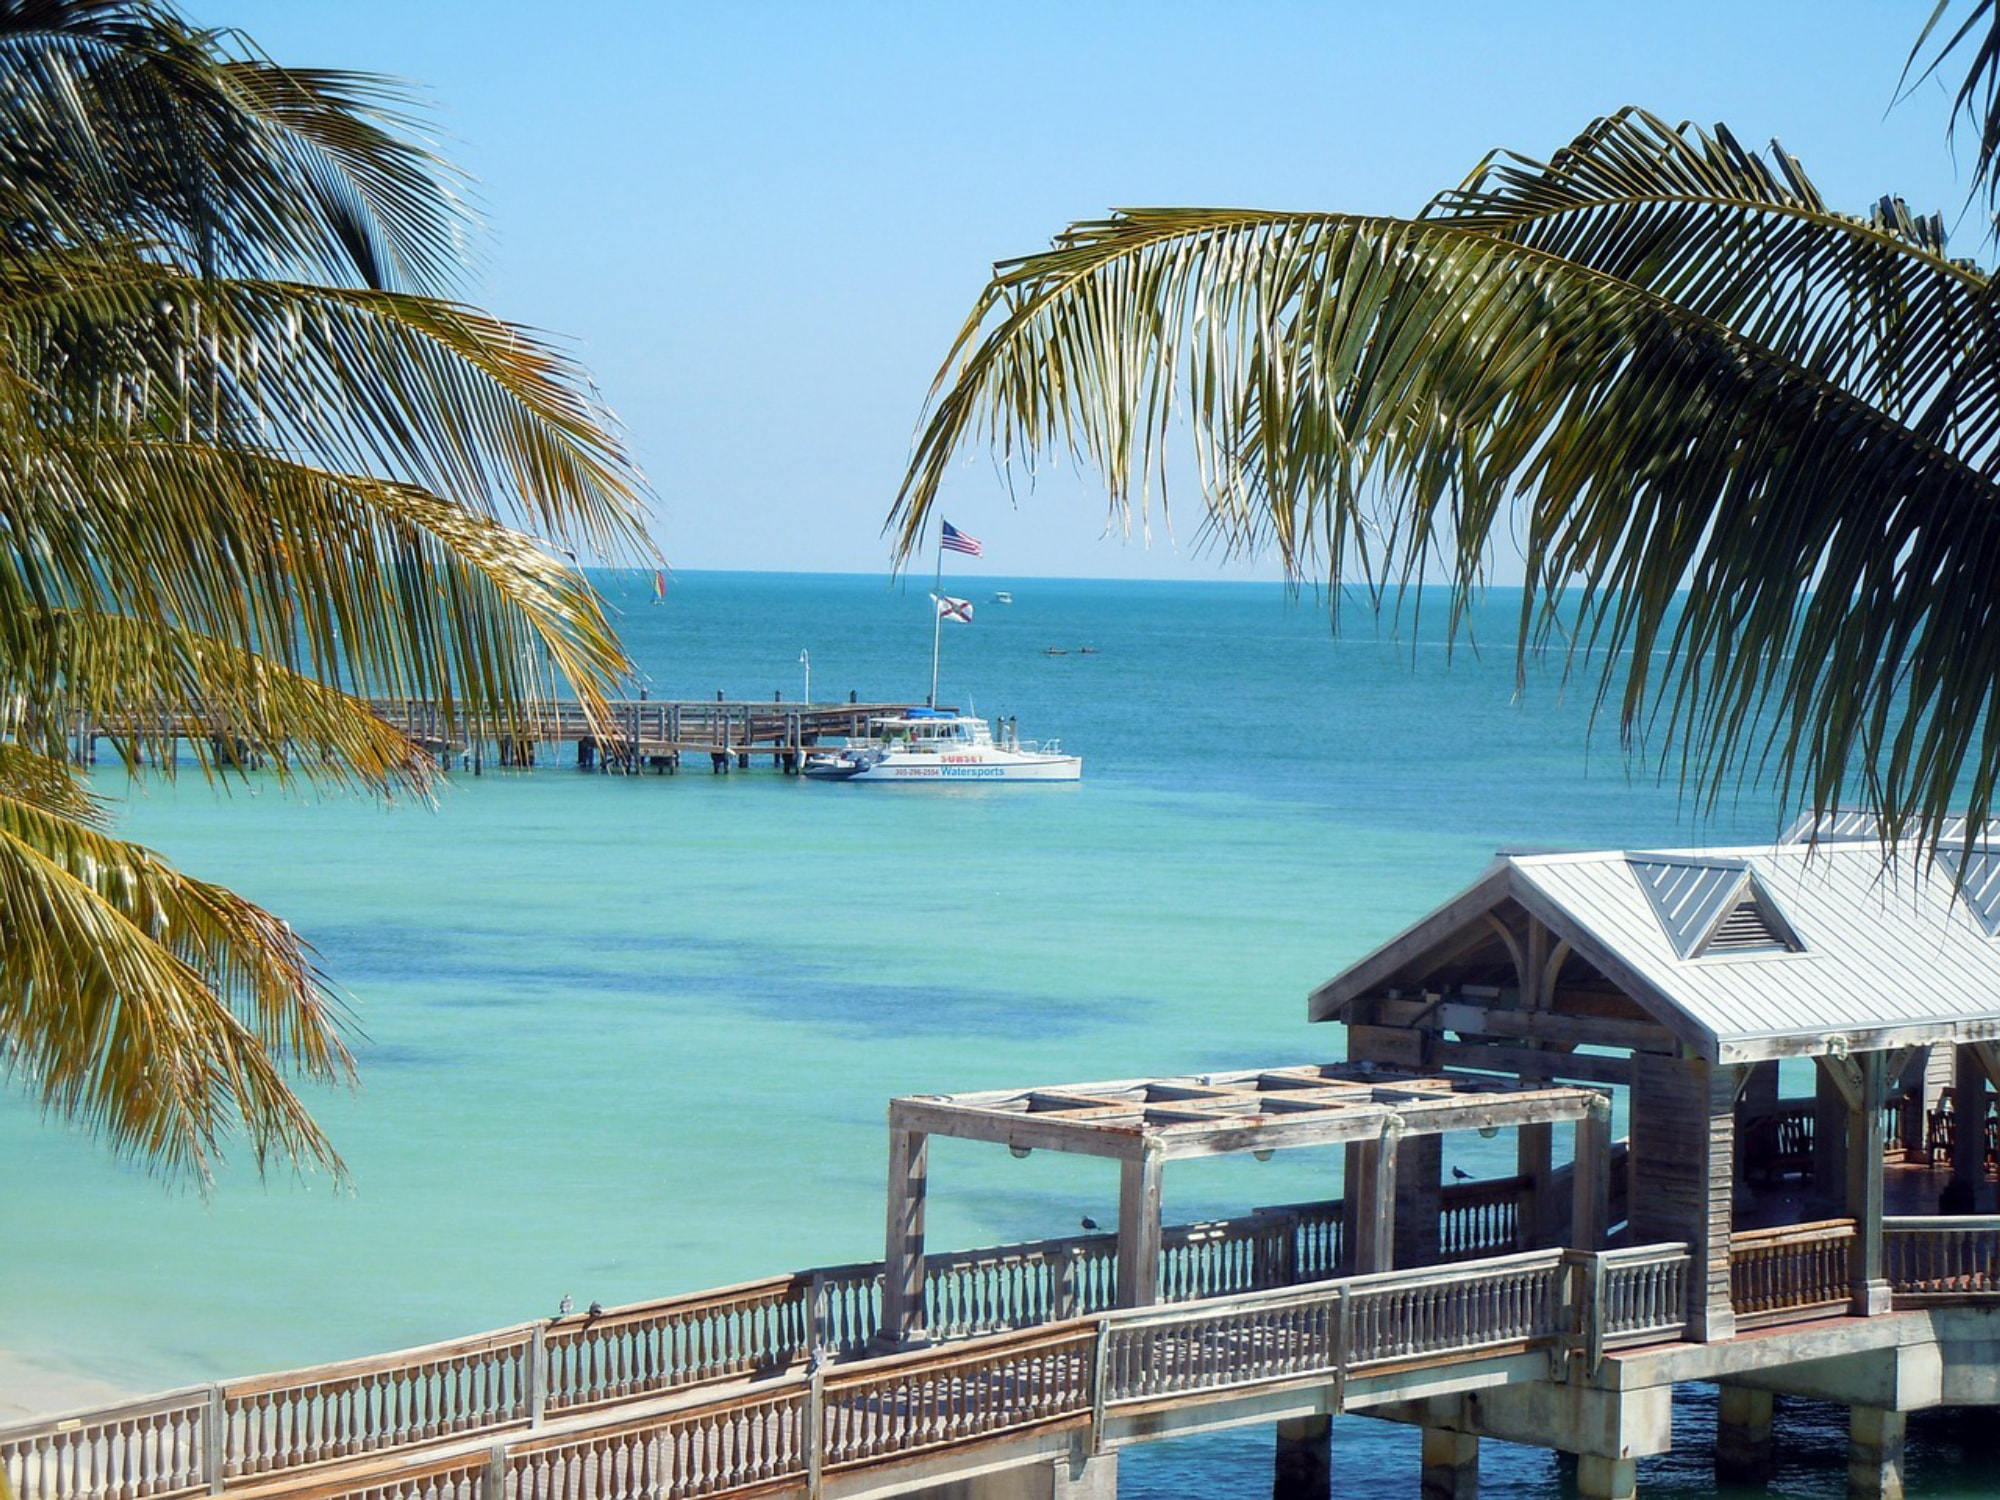 Getting to The Florida Keys, United States